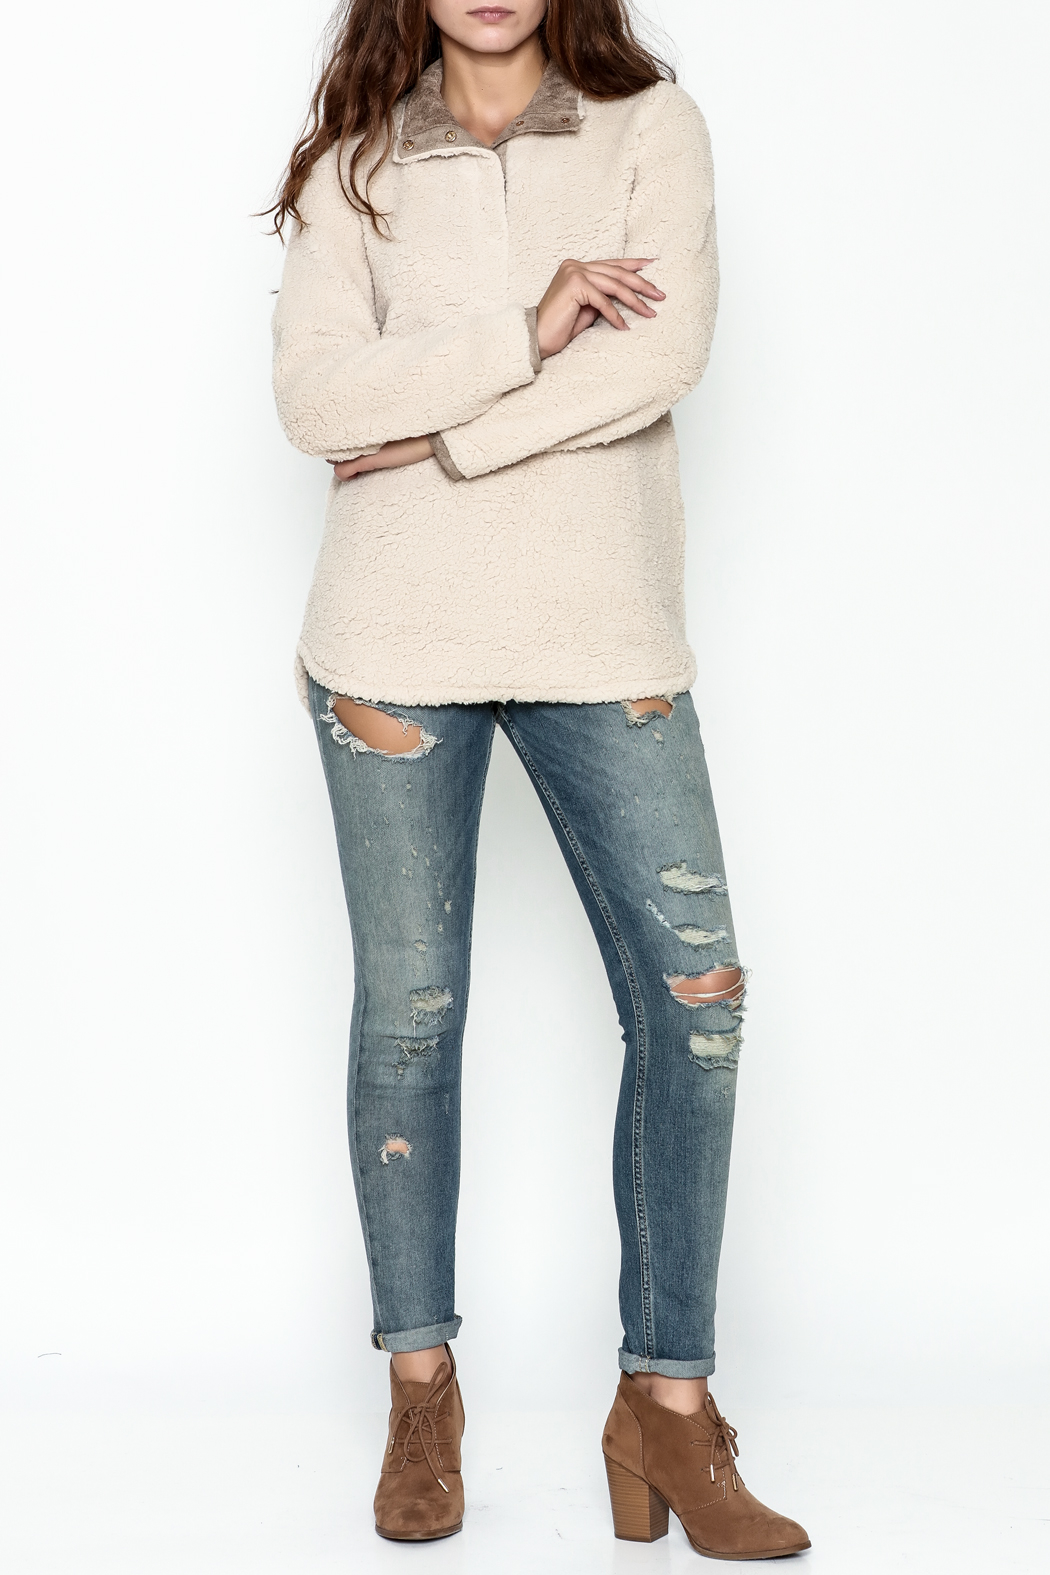 JoyJoy Faux Sherpa Pullover - Side Cropped Image